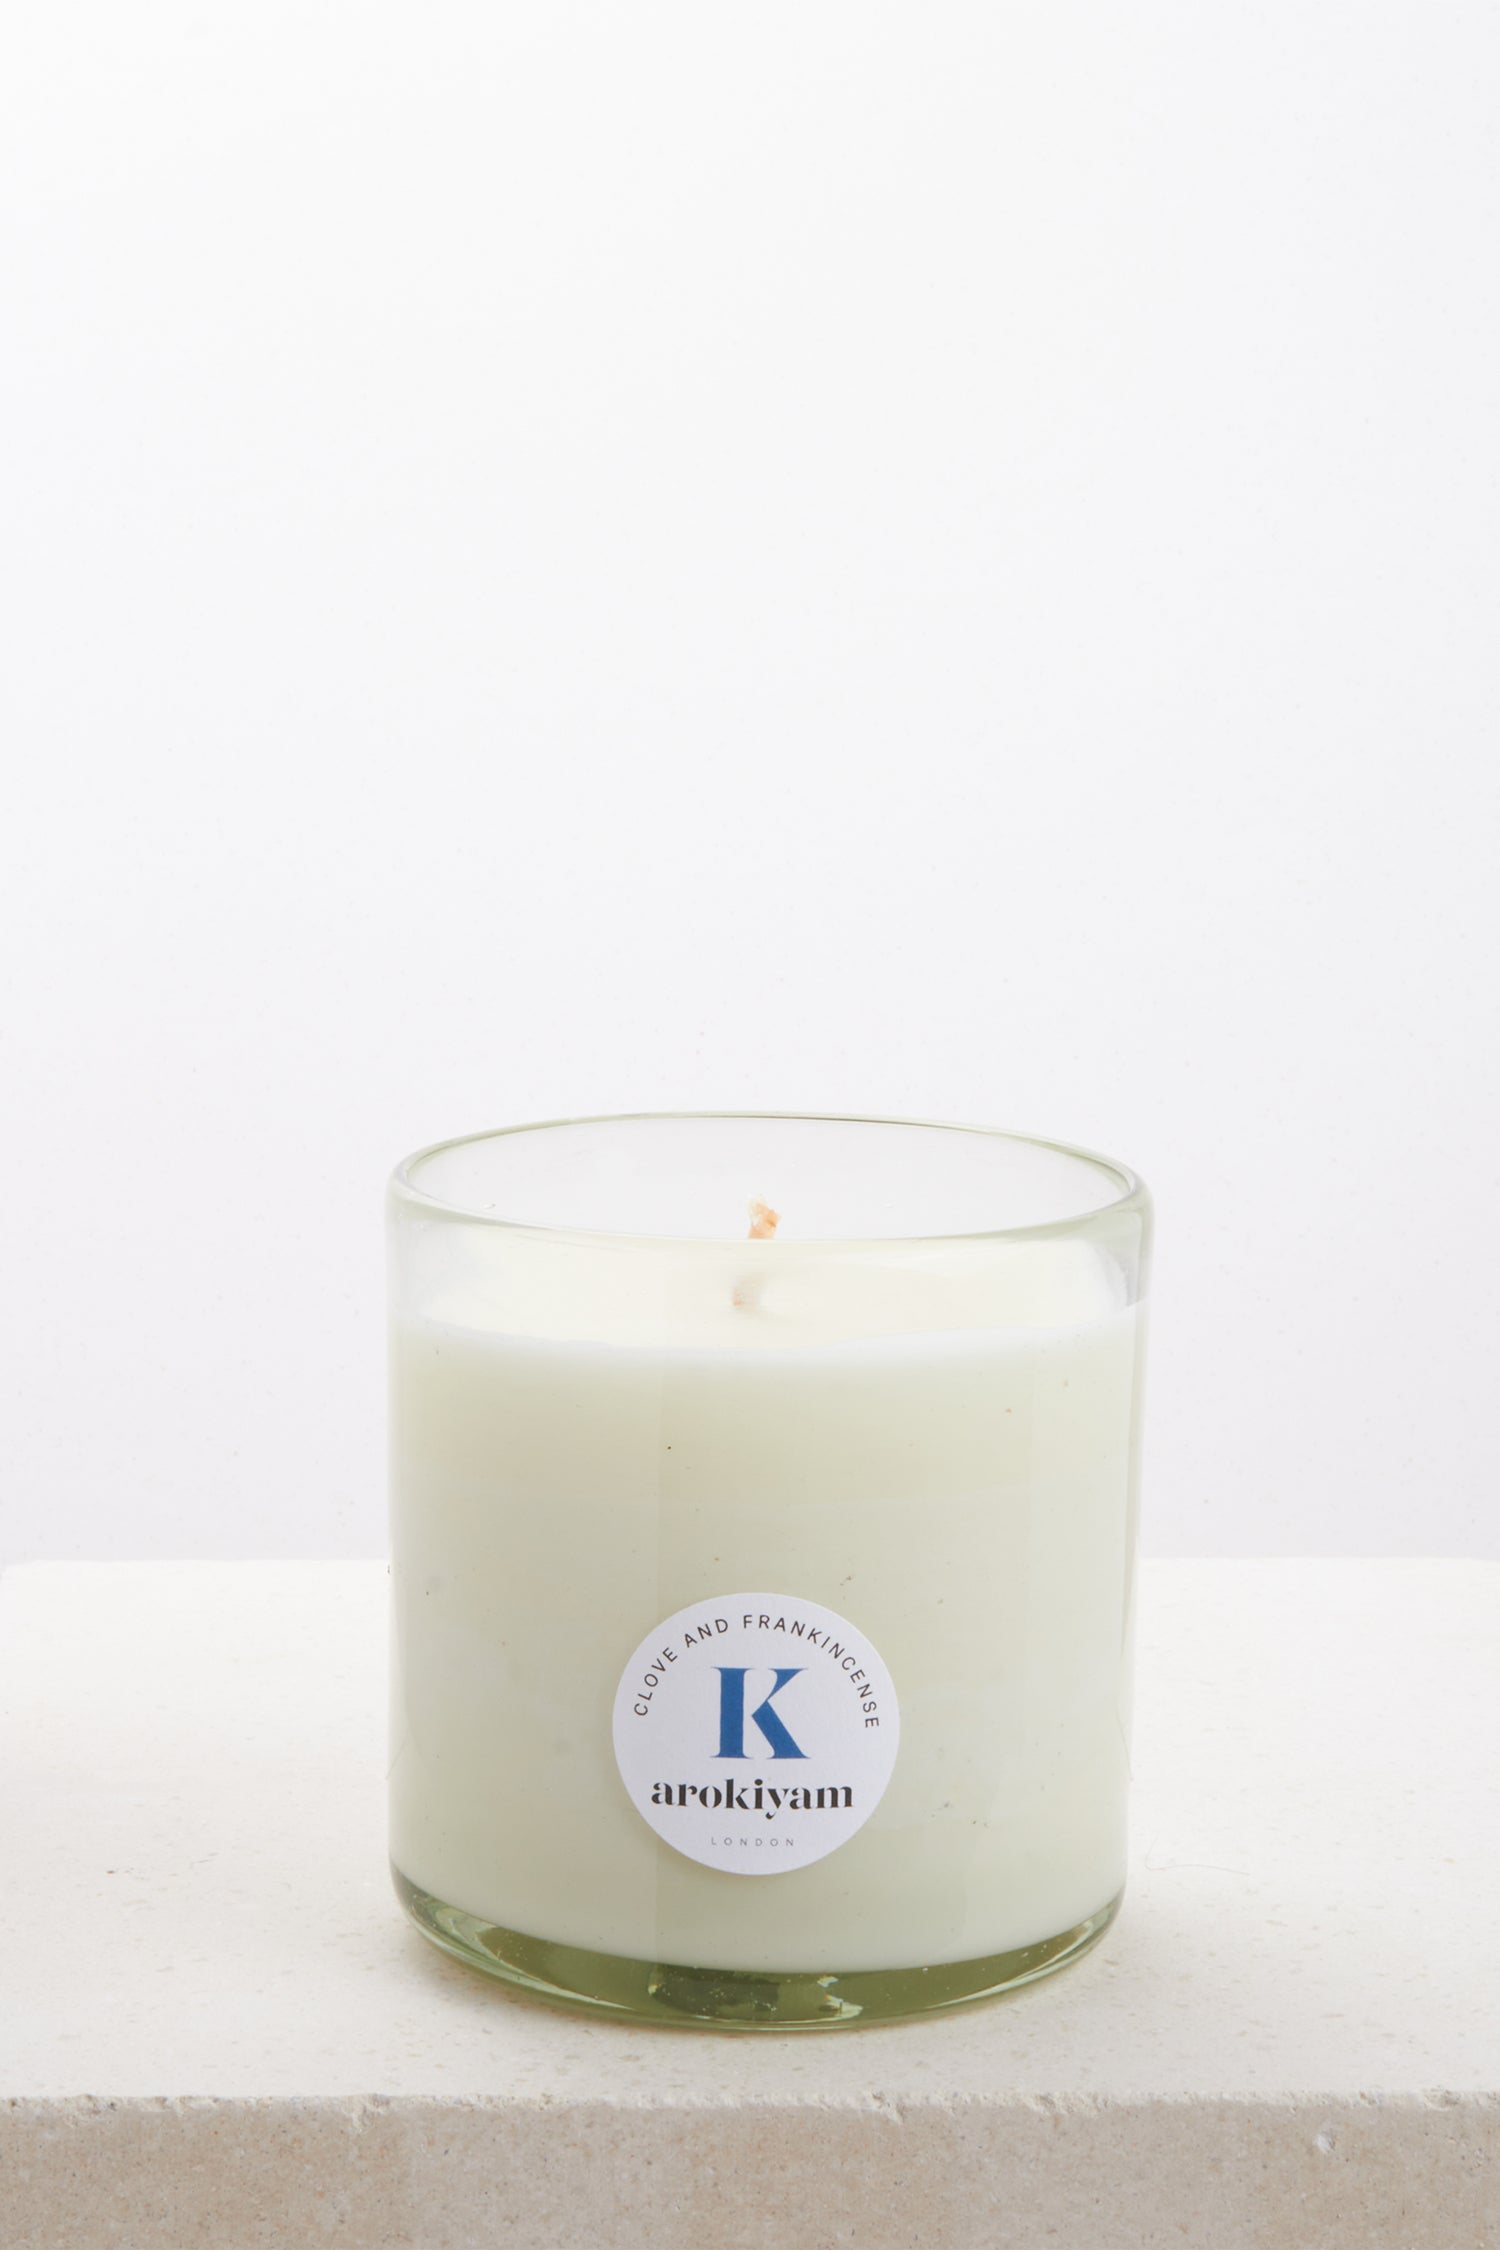 Vegan candle made from a coconut and soy wax and scented with natural clove and frankincense. Made in London.